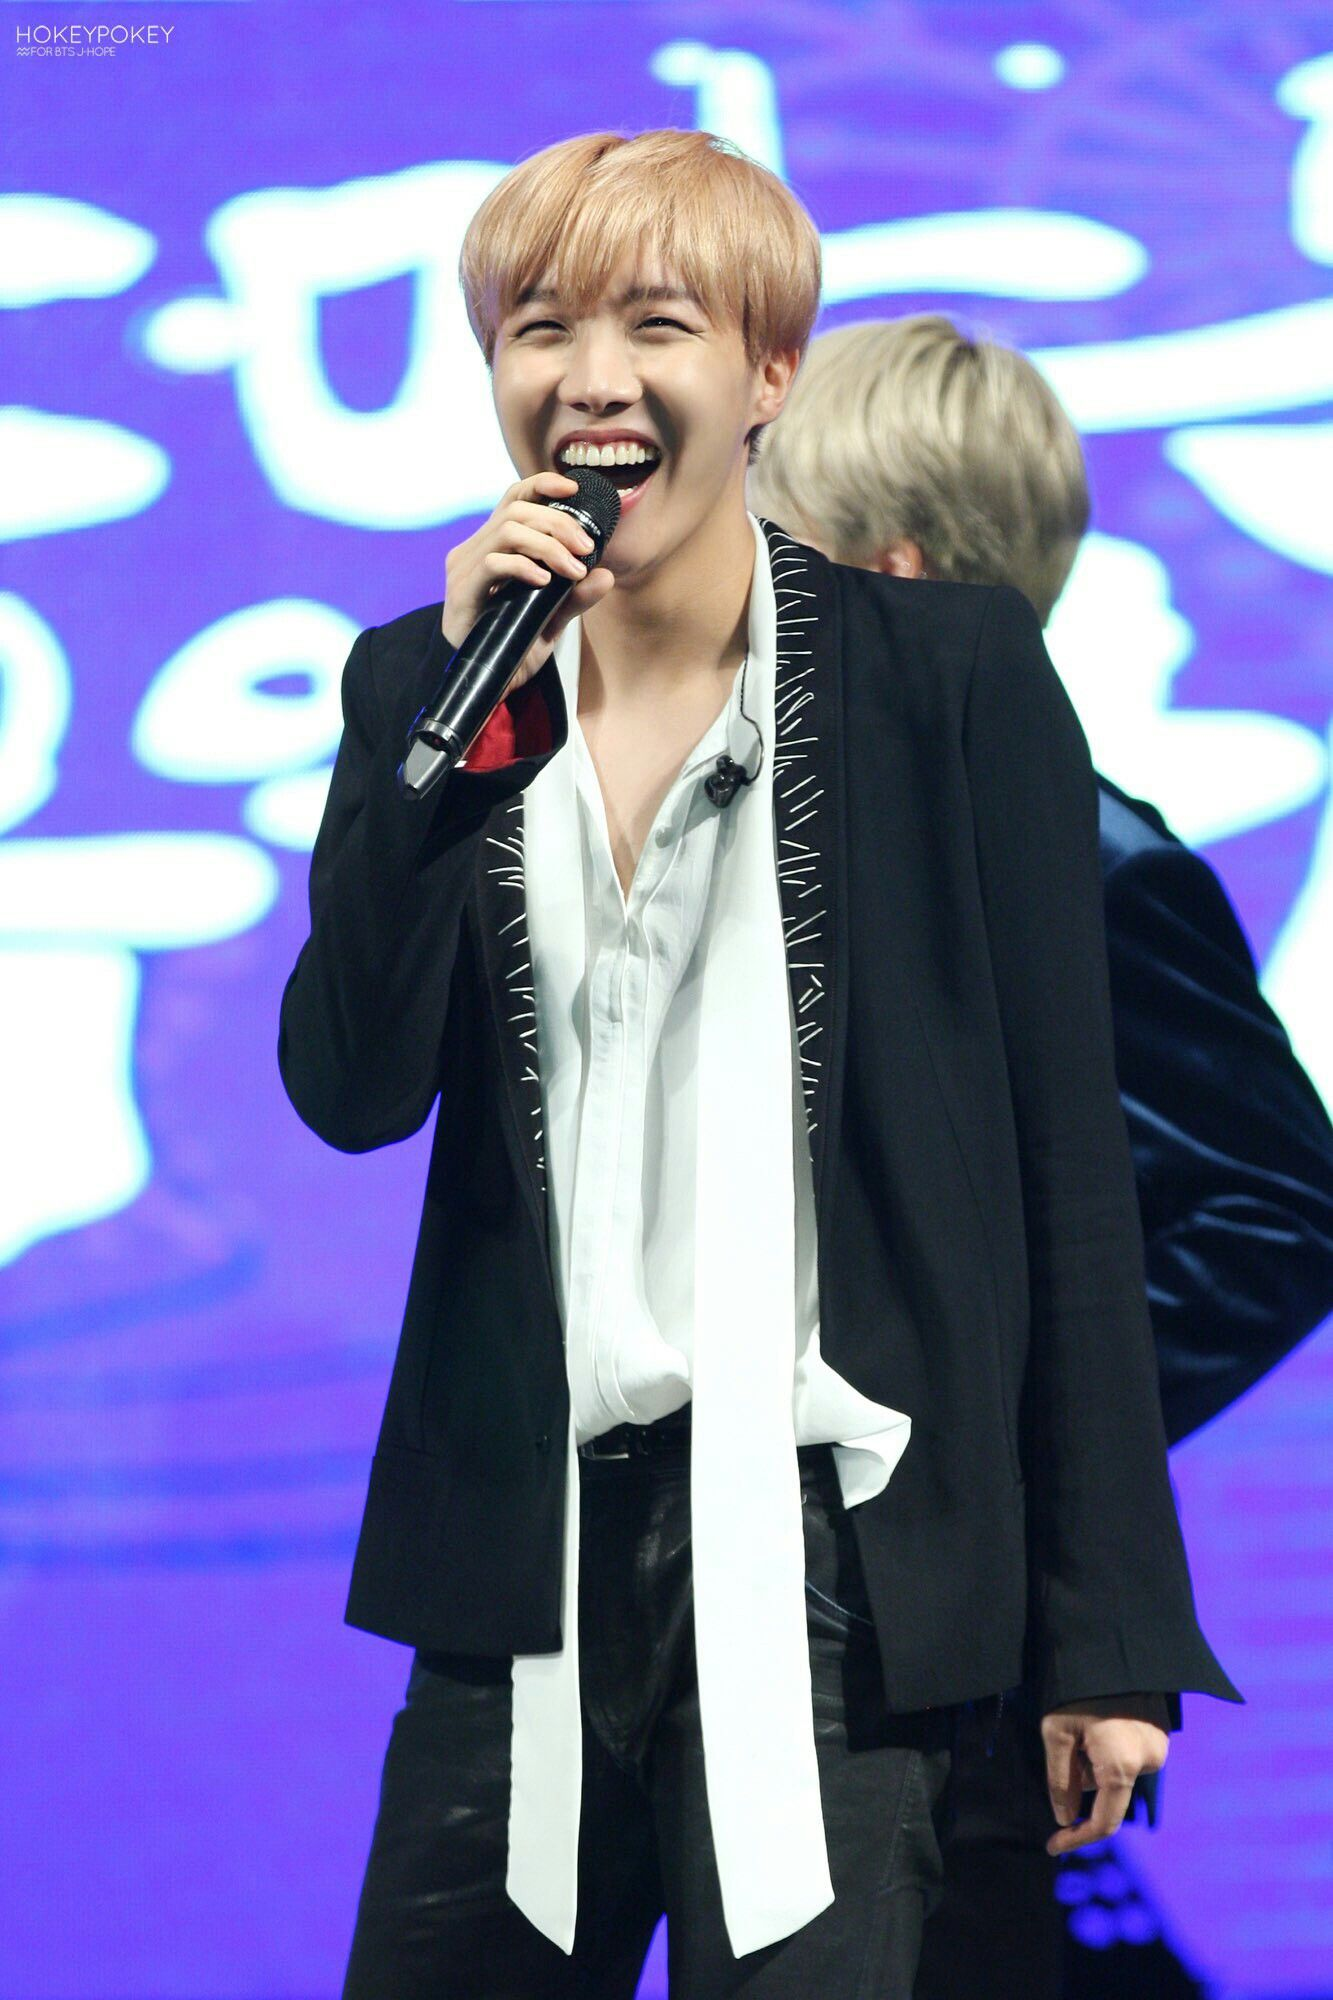 J-Hope ❤ BTS at the Geumsan County One Heart Concert / Nonsan Youth Winter Concert (161222) #BTS #방탄소년단